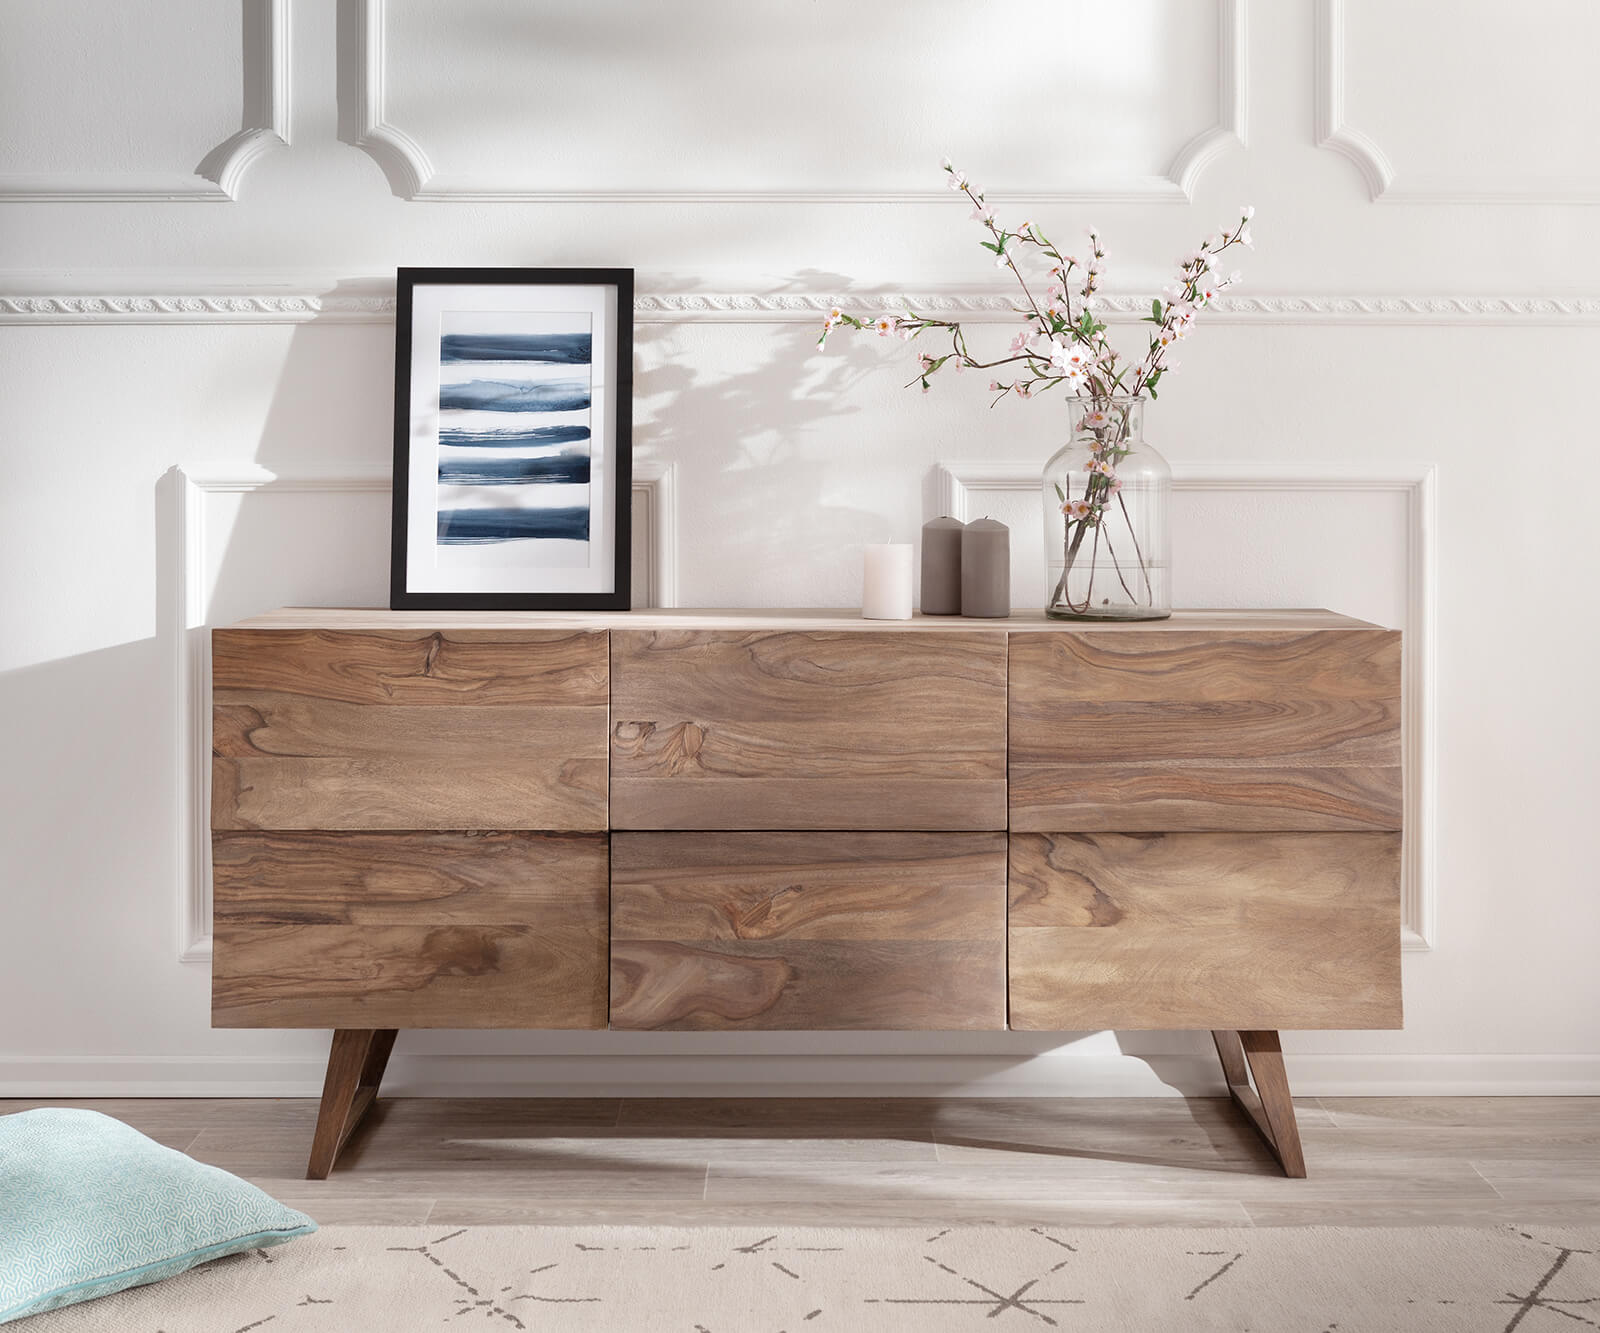 Design Sideboard Wyatt 150 Cm Sheesham Natur 2 Turen Mobel Kommoden